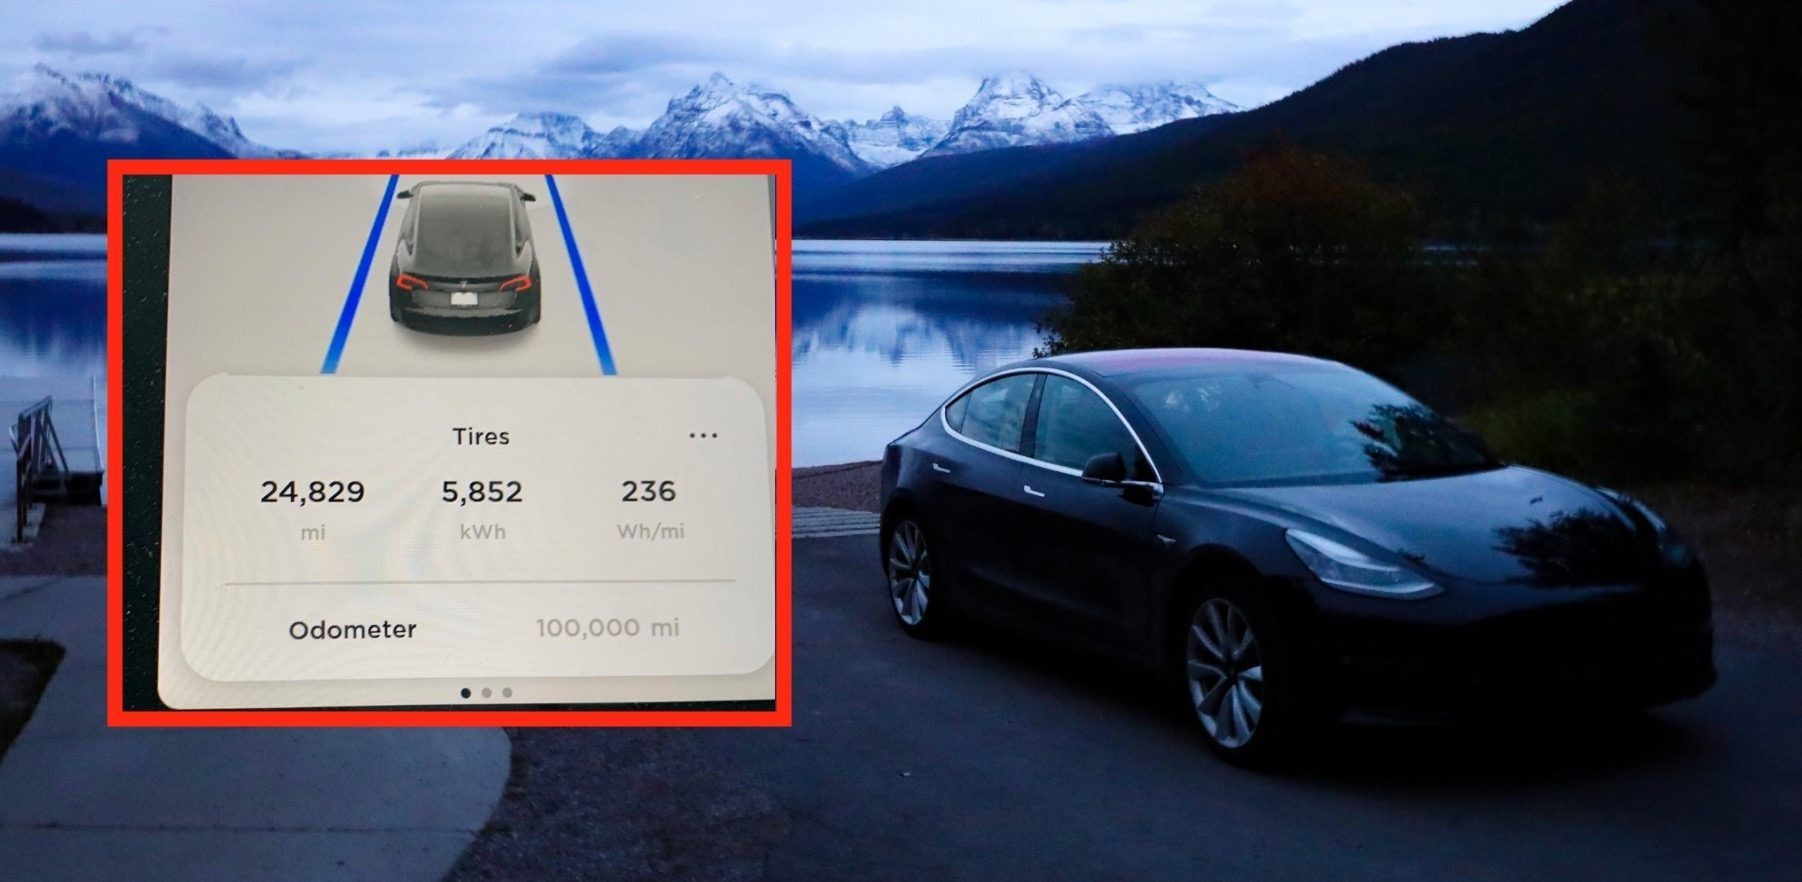 Tesla owner becomes first to push Model 3 to 100,000 miles, here's how it's doing - Electrek